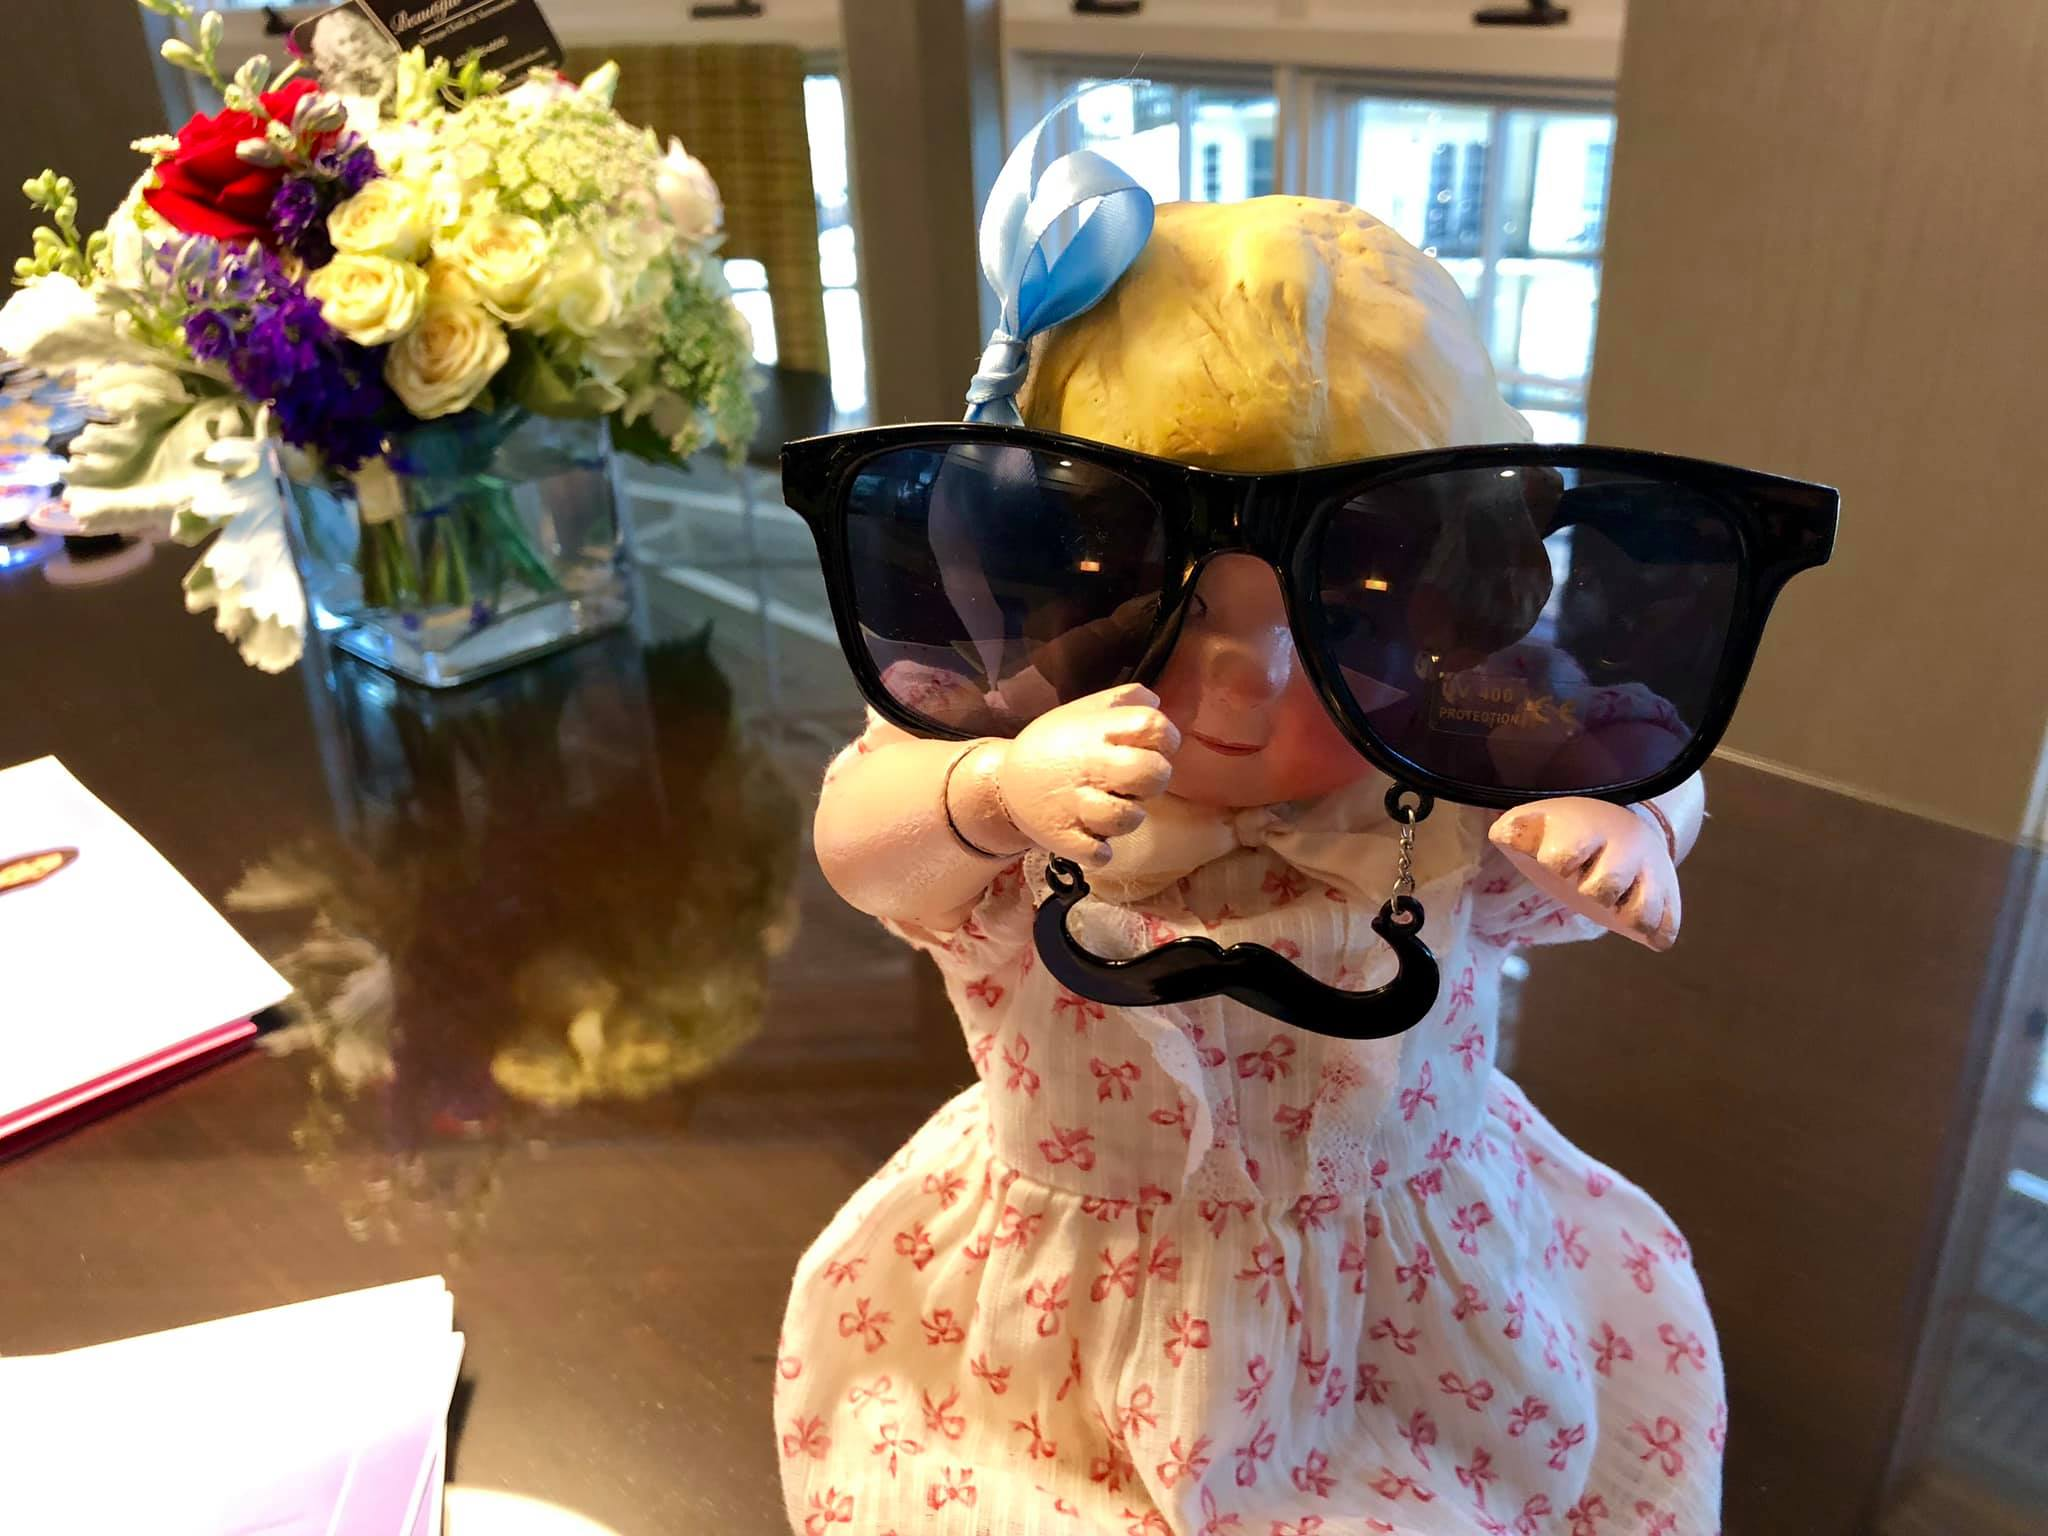 Our Dolly Dingle made by Joelle Strathers at the VDC Meetup event in her Secret Agent Sunglasses